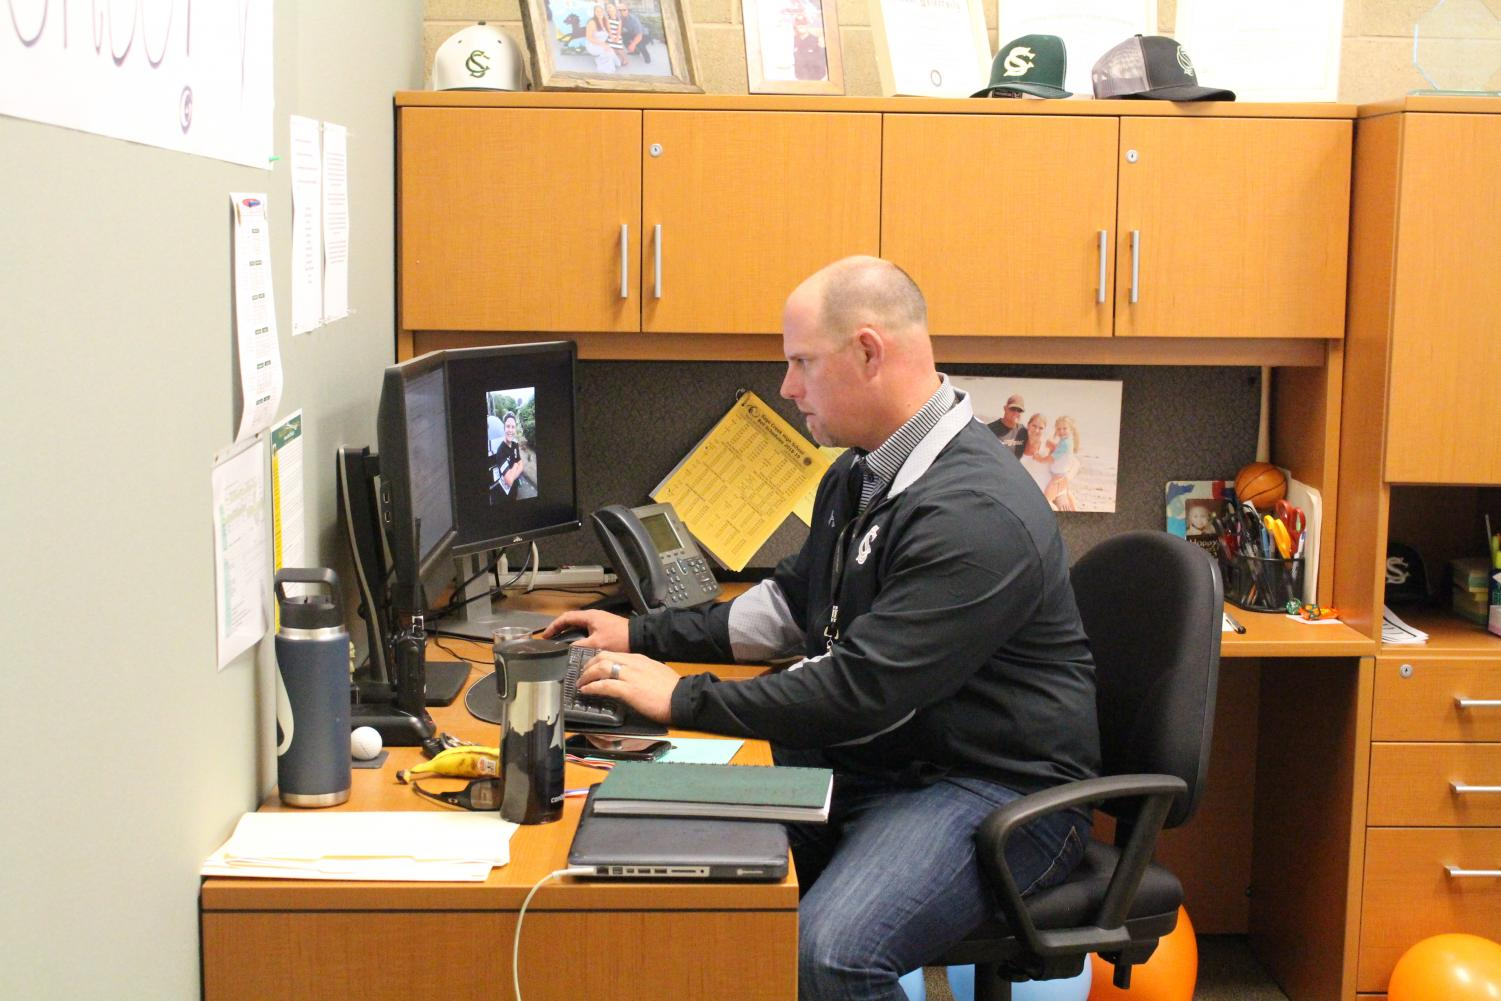 Jesse Schuveiller is now the official principal for the 2019-2020 school year and onwards. He has served as the assistant principal of Sage Creek for the past two years alongside Mr. Morales.